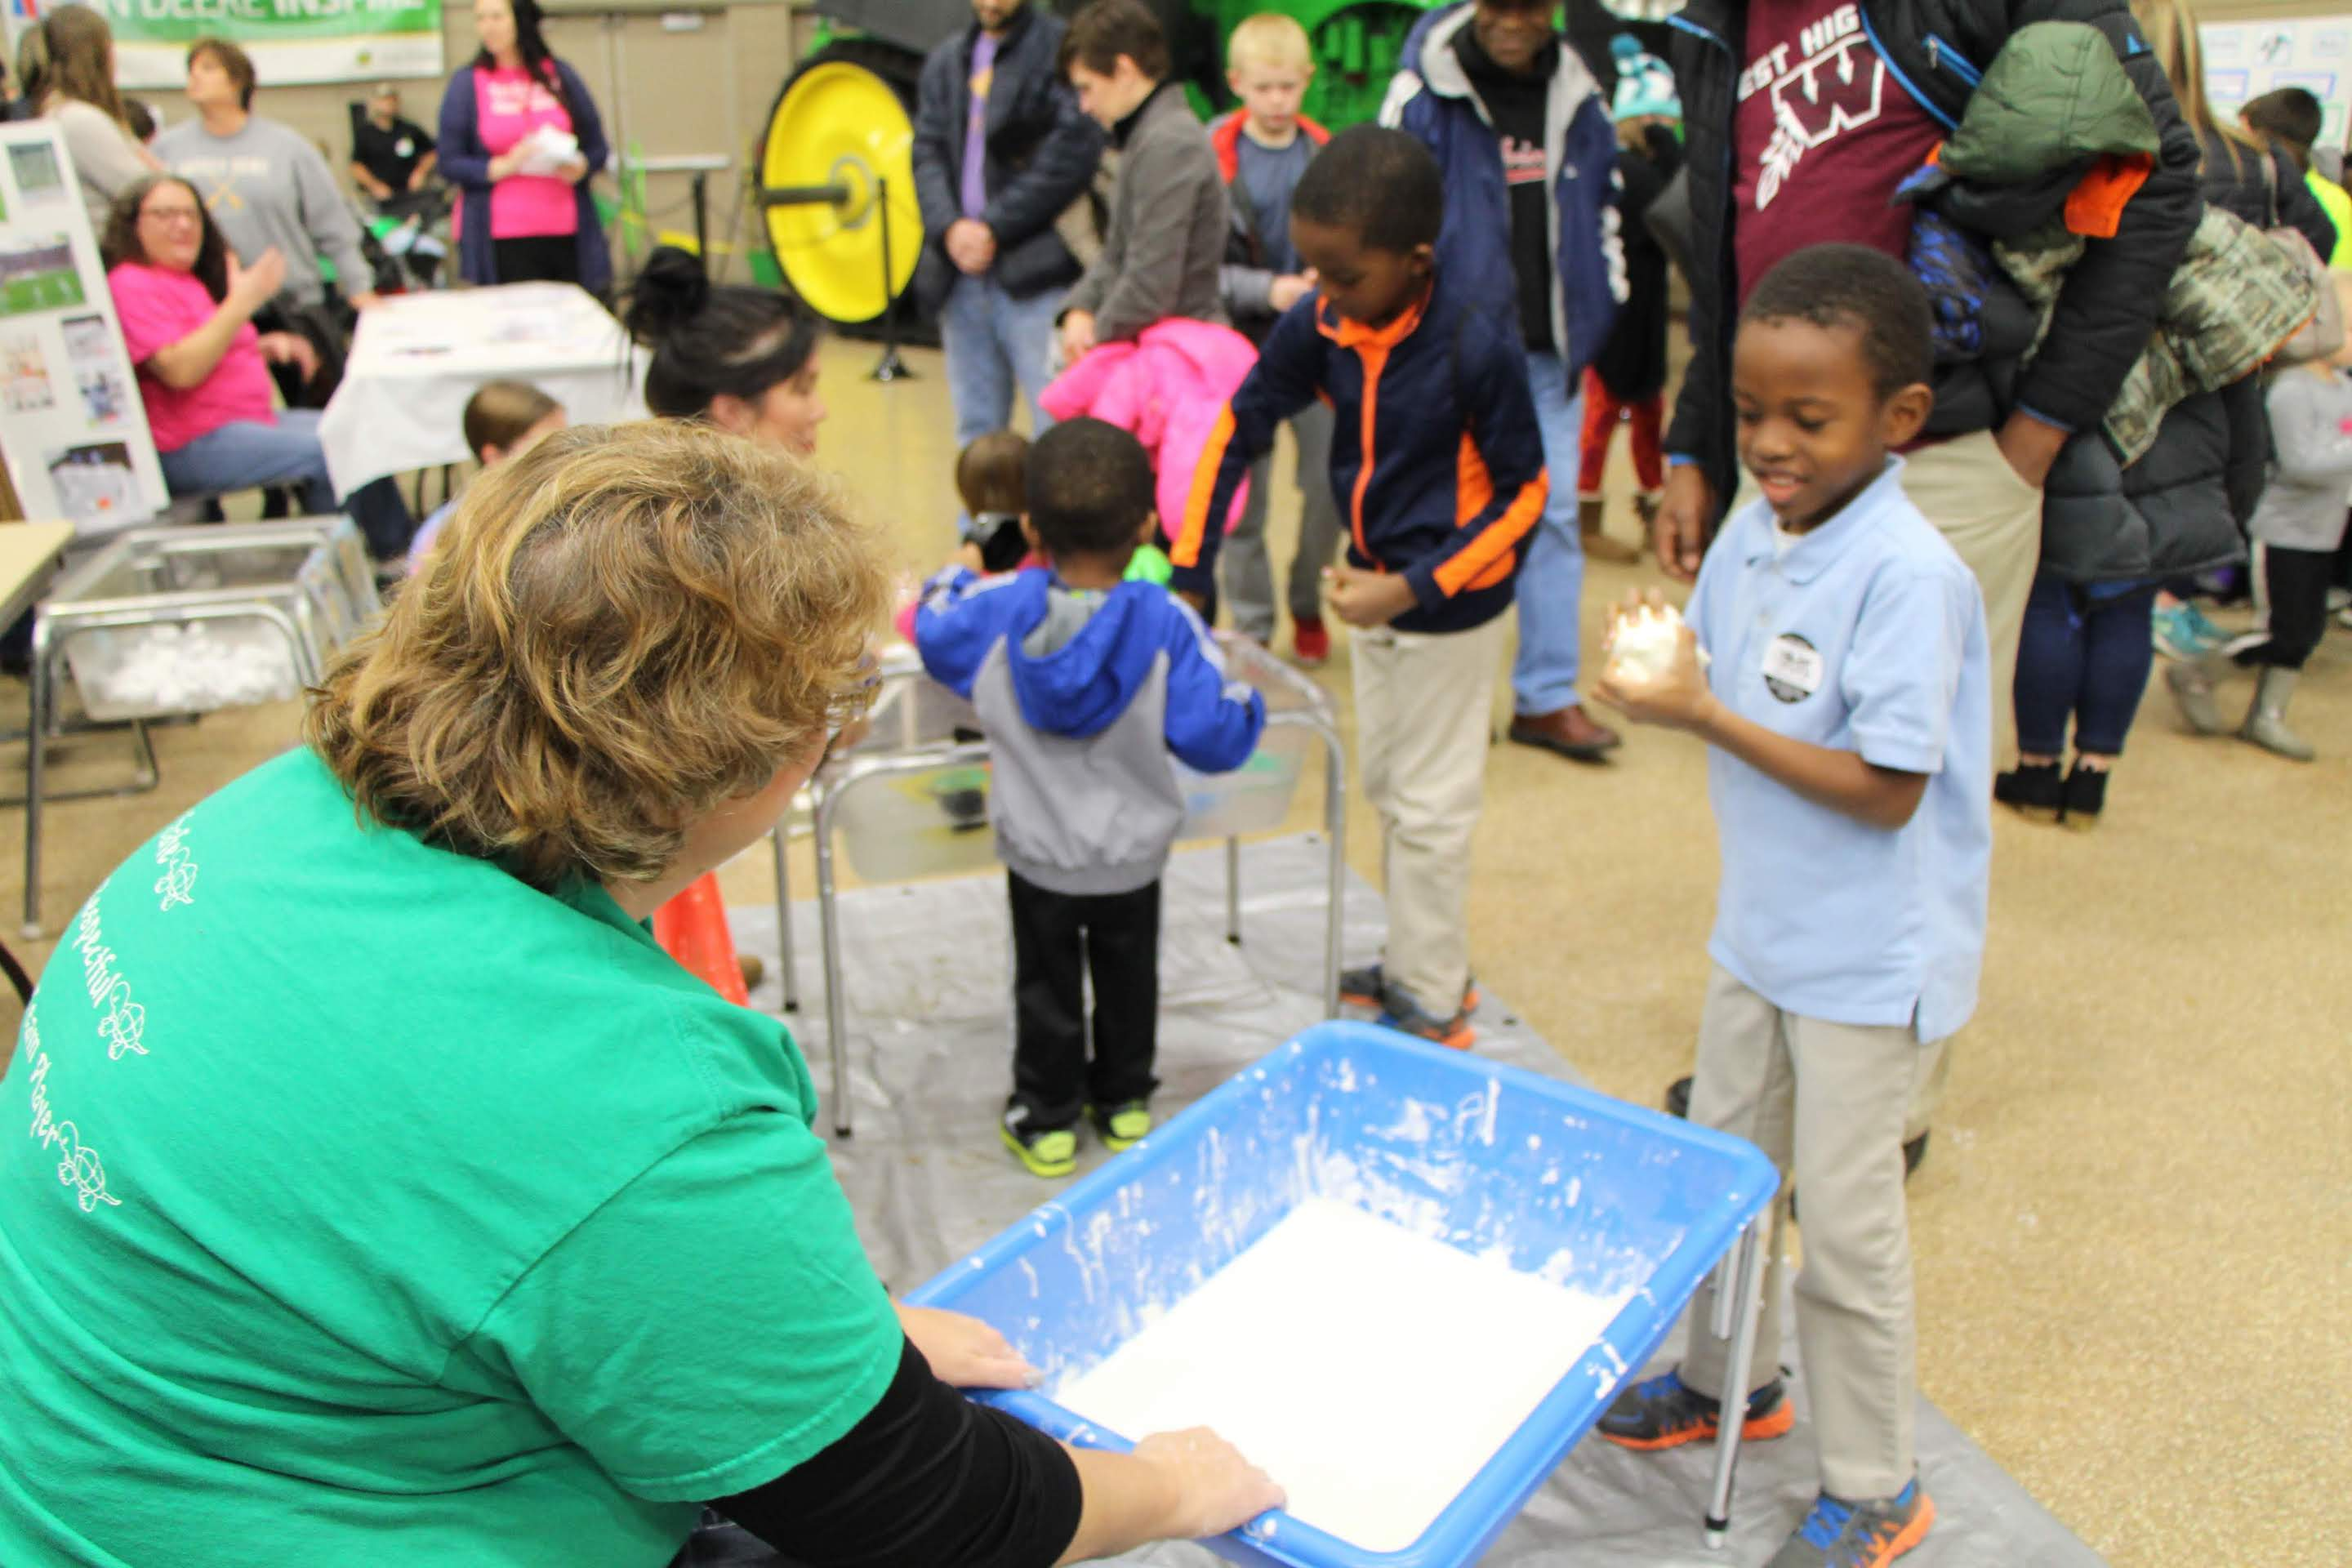 Students enjoy hands-on STEM activities.